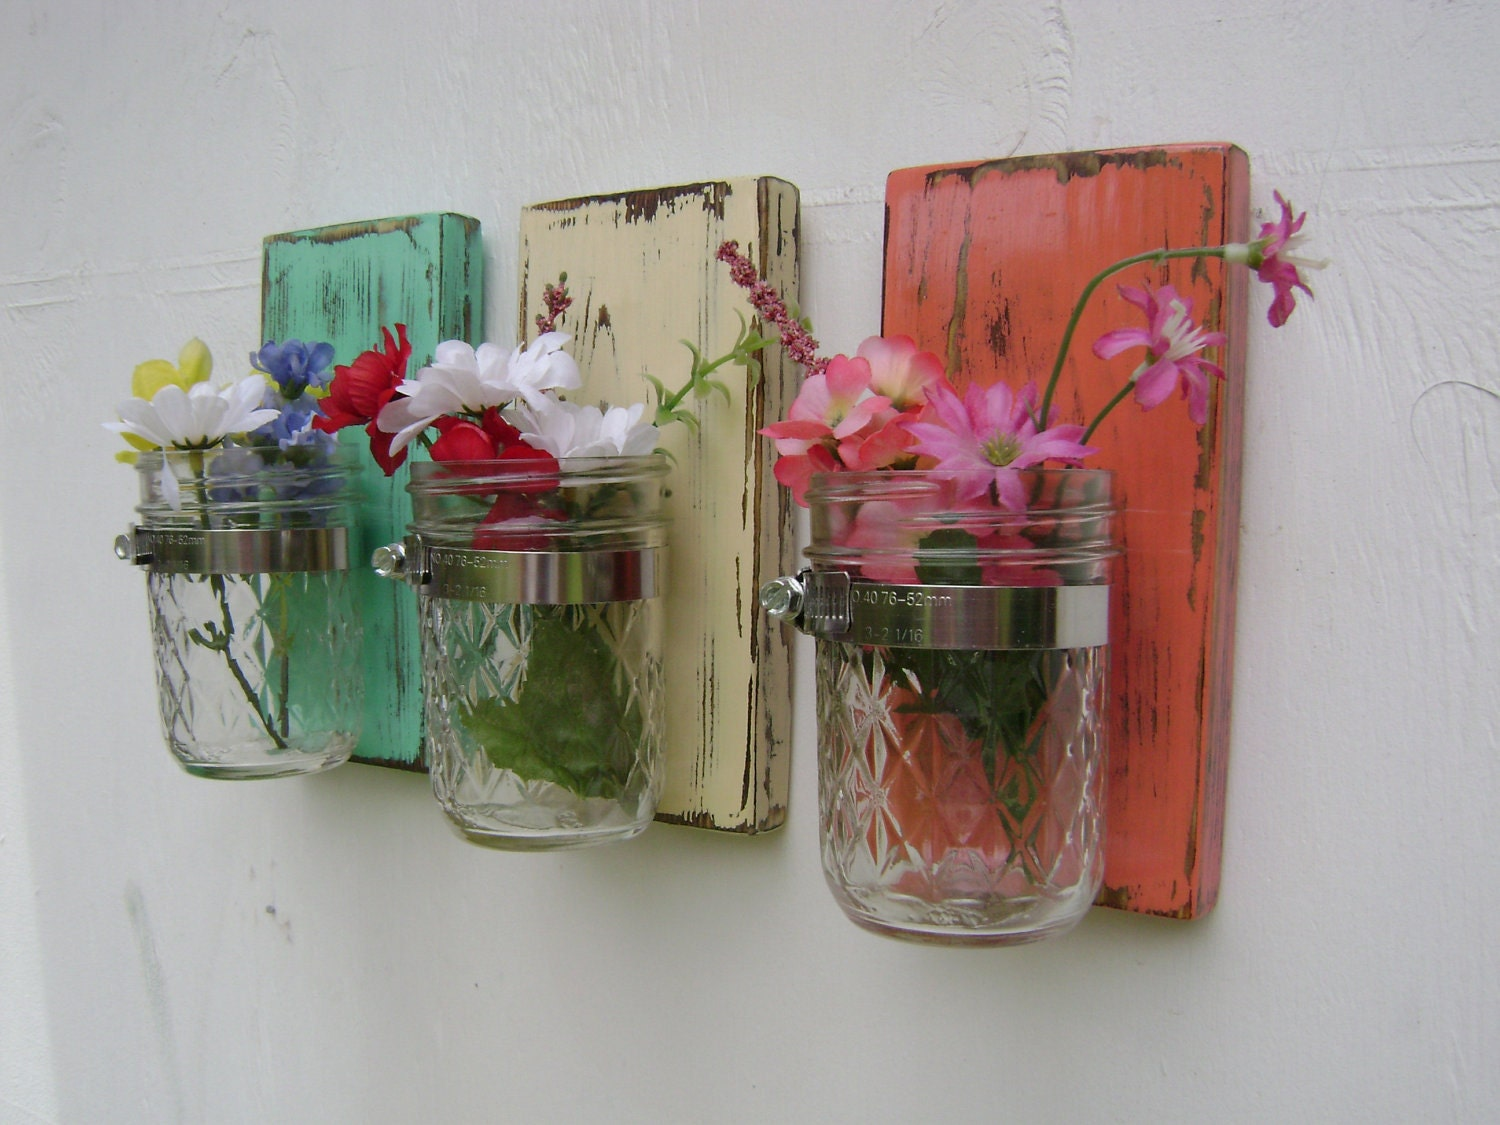 wall sconce shabby chic rustic wooden vases by UncleJohnsCabin